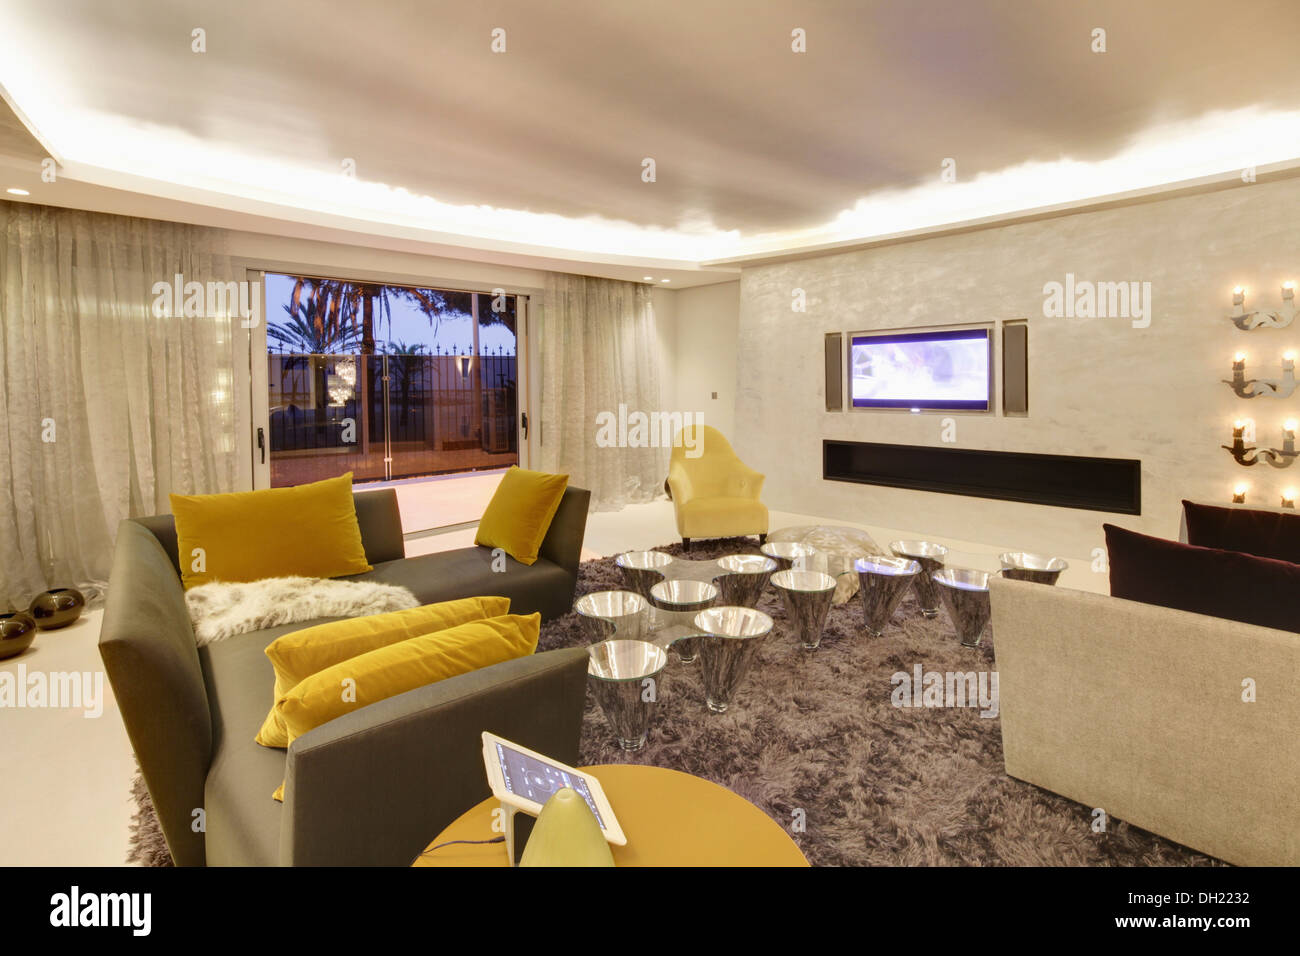 Yellow velvet cushions on gray sofas in large modern Spanish living room with shag pile carpet and chrome tables - Stock Image